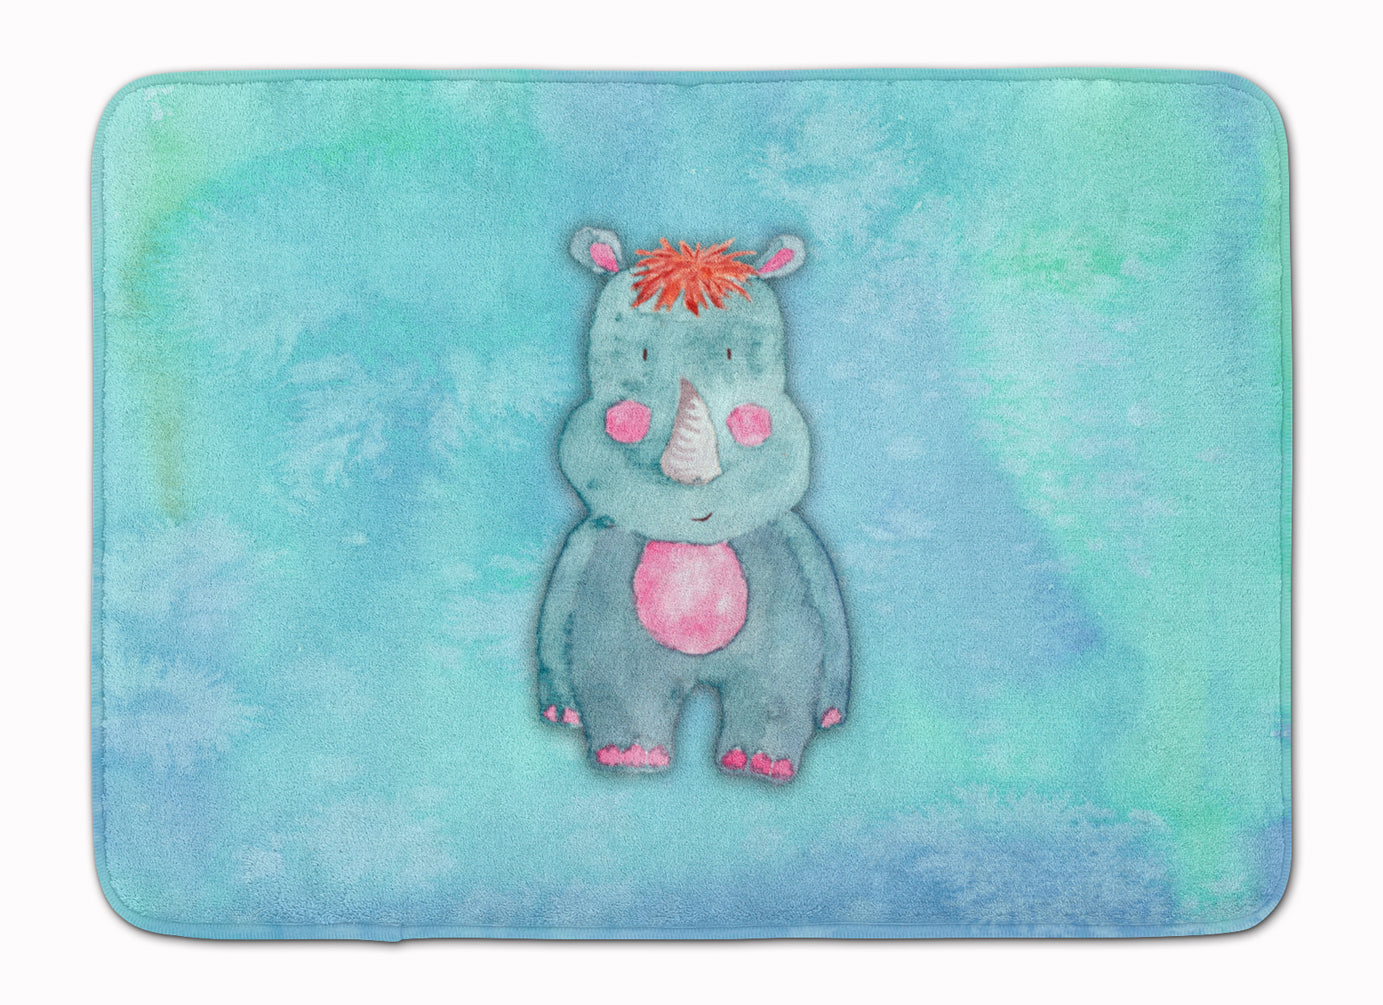 Rhinoceros Watercolor Machine Washable Memory Foam Mat BB7381RUG by Caroline's Treasures